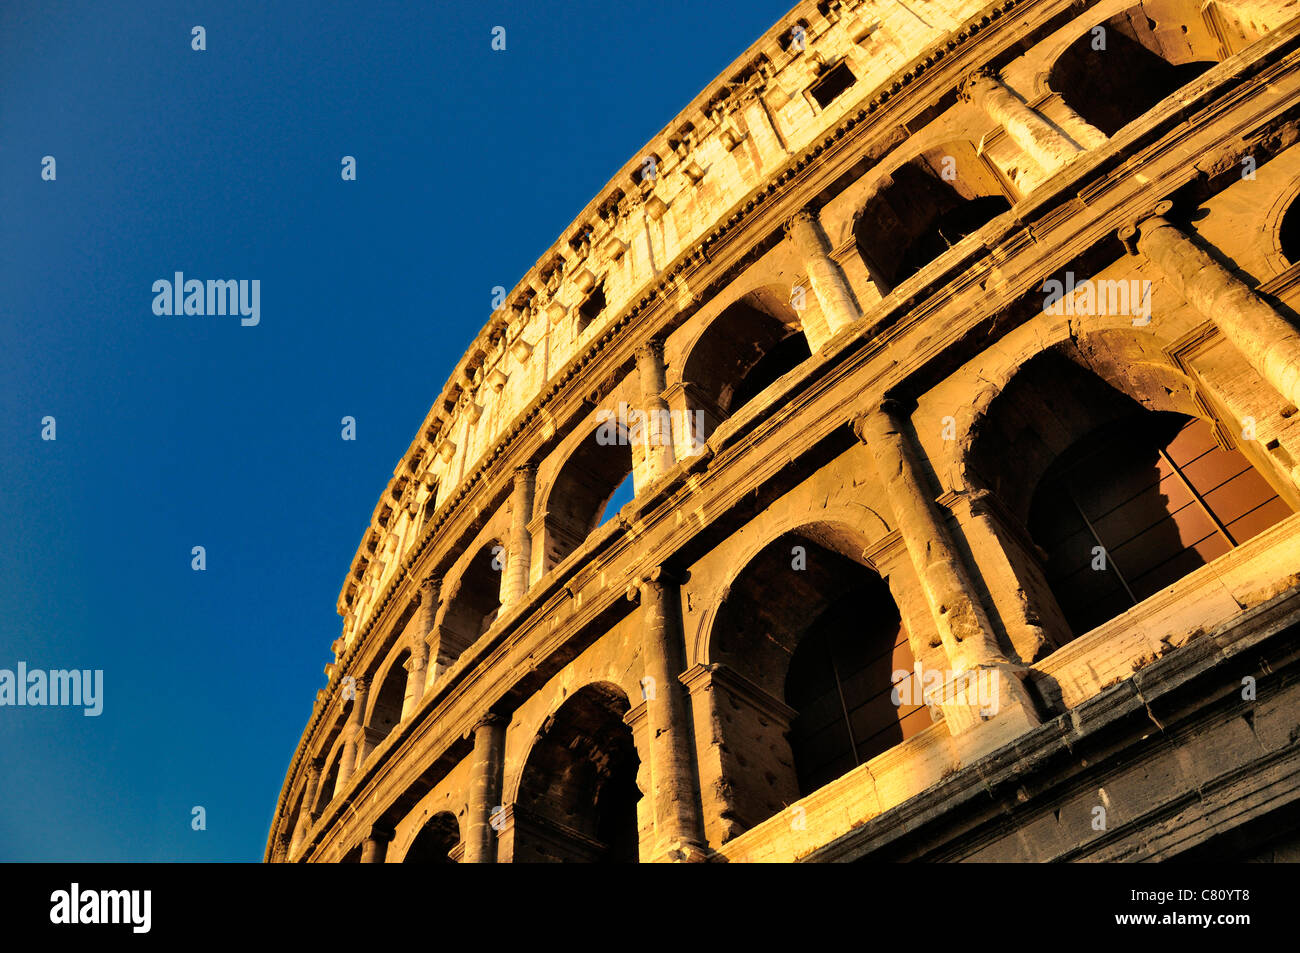 Colosseum, Rome, Italy, Europe - close up detail - Stock Image